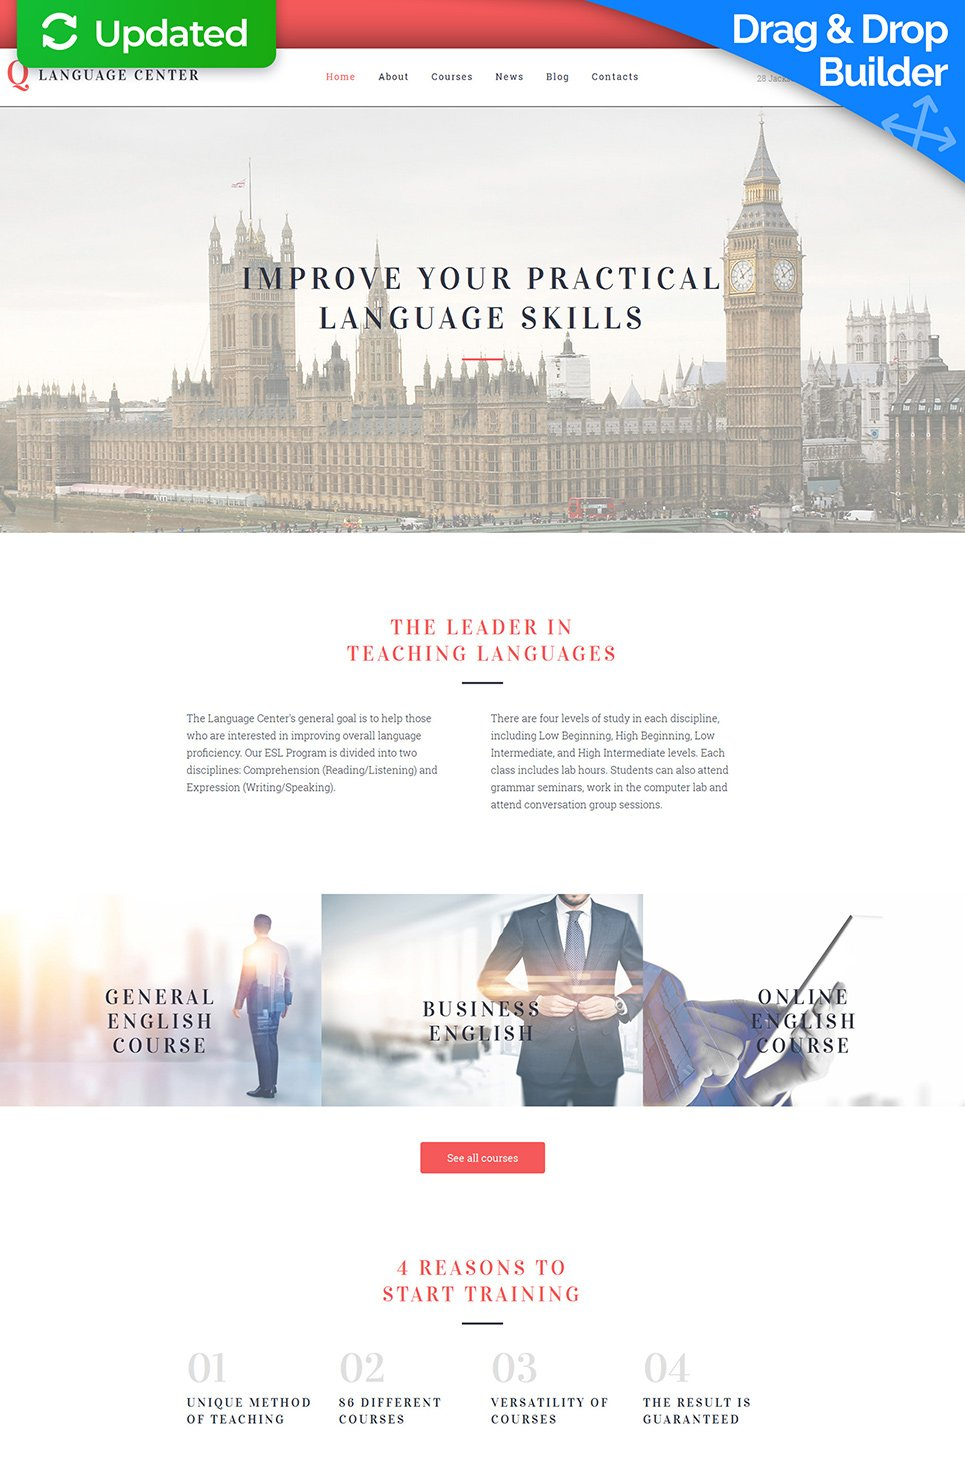 White theme for education site